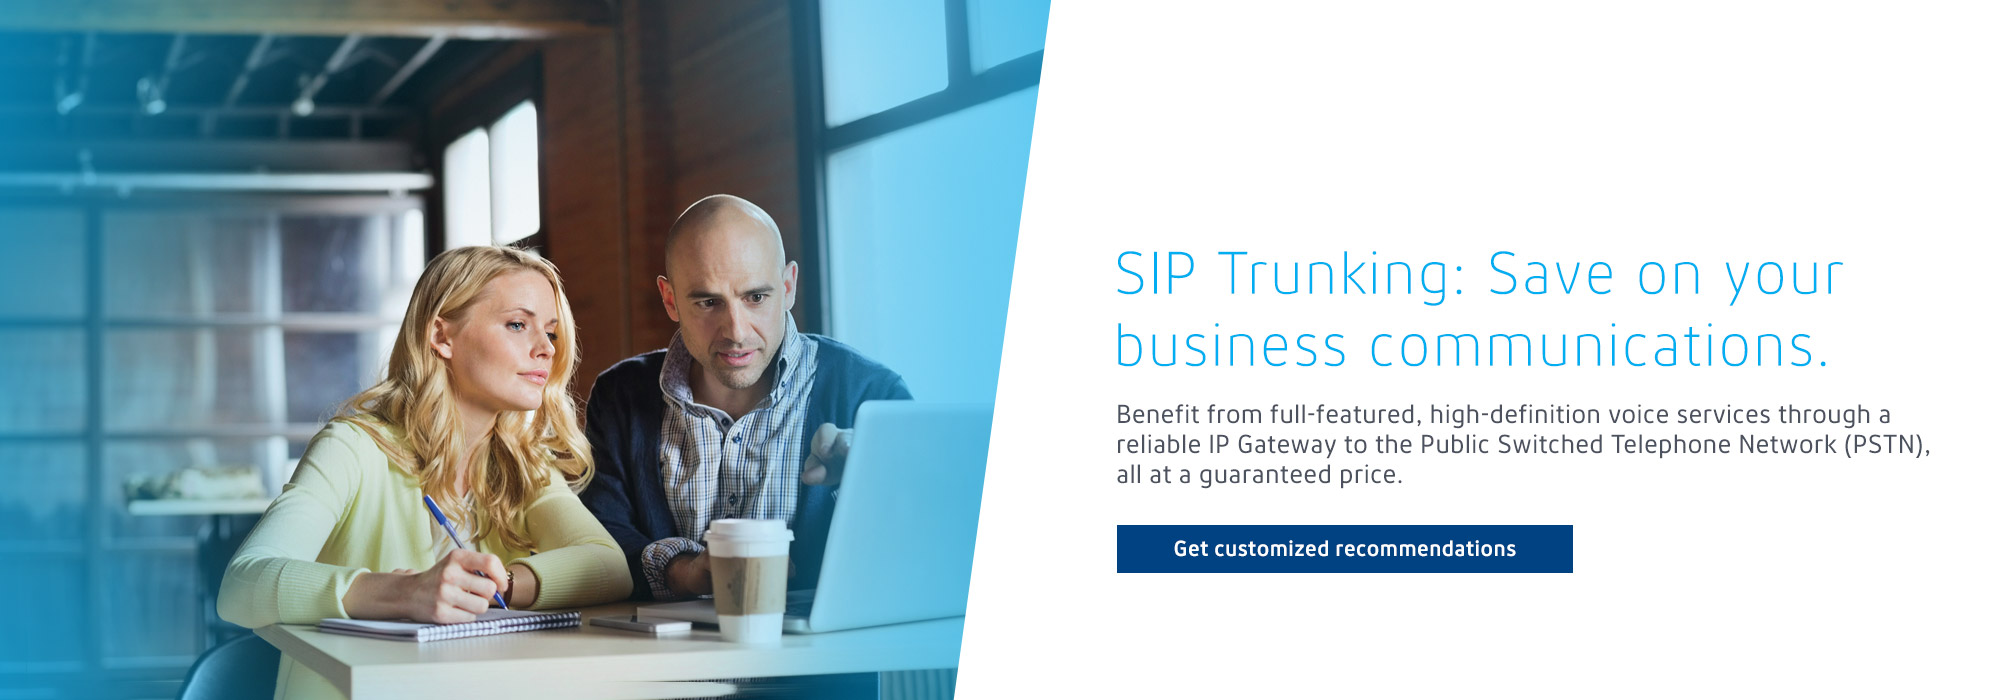 SIP Trunking: Save on your business communications.